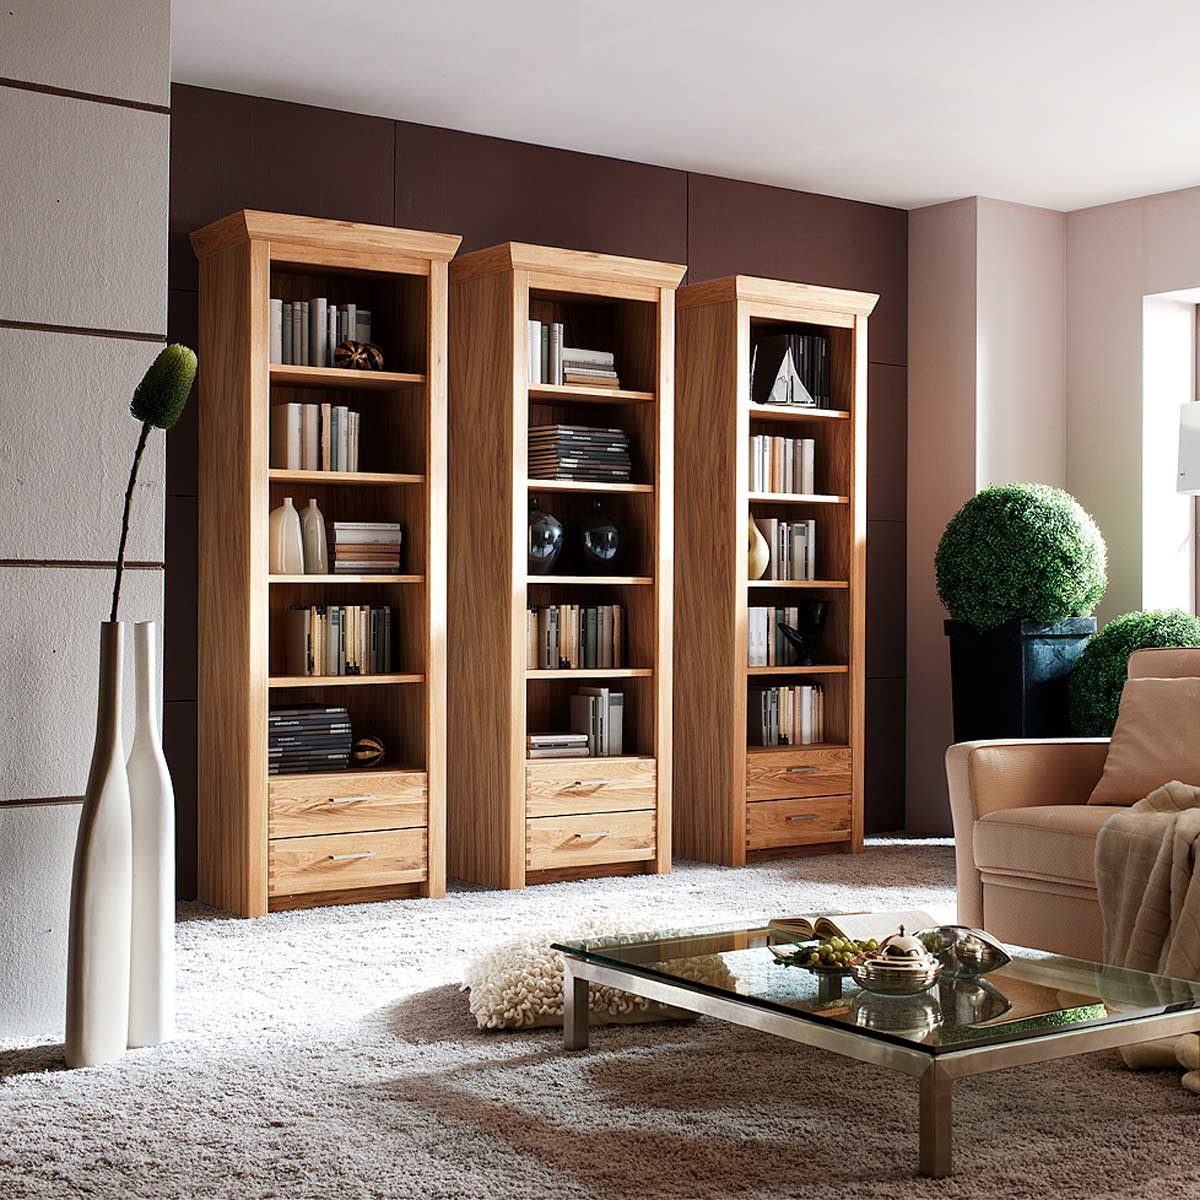 regal b cherregal standregal mit schubladen in eiche. Black Bedroom Furniture Sets. Home Design Ideas